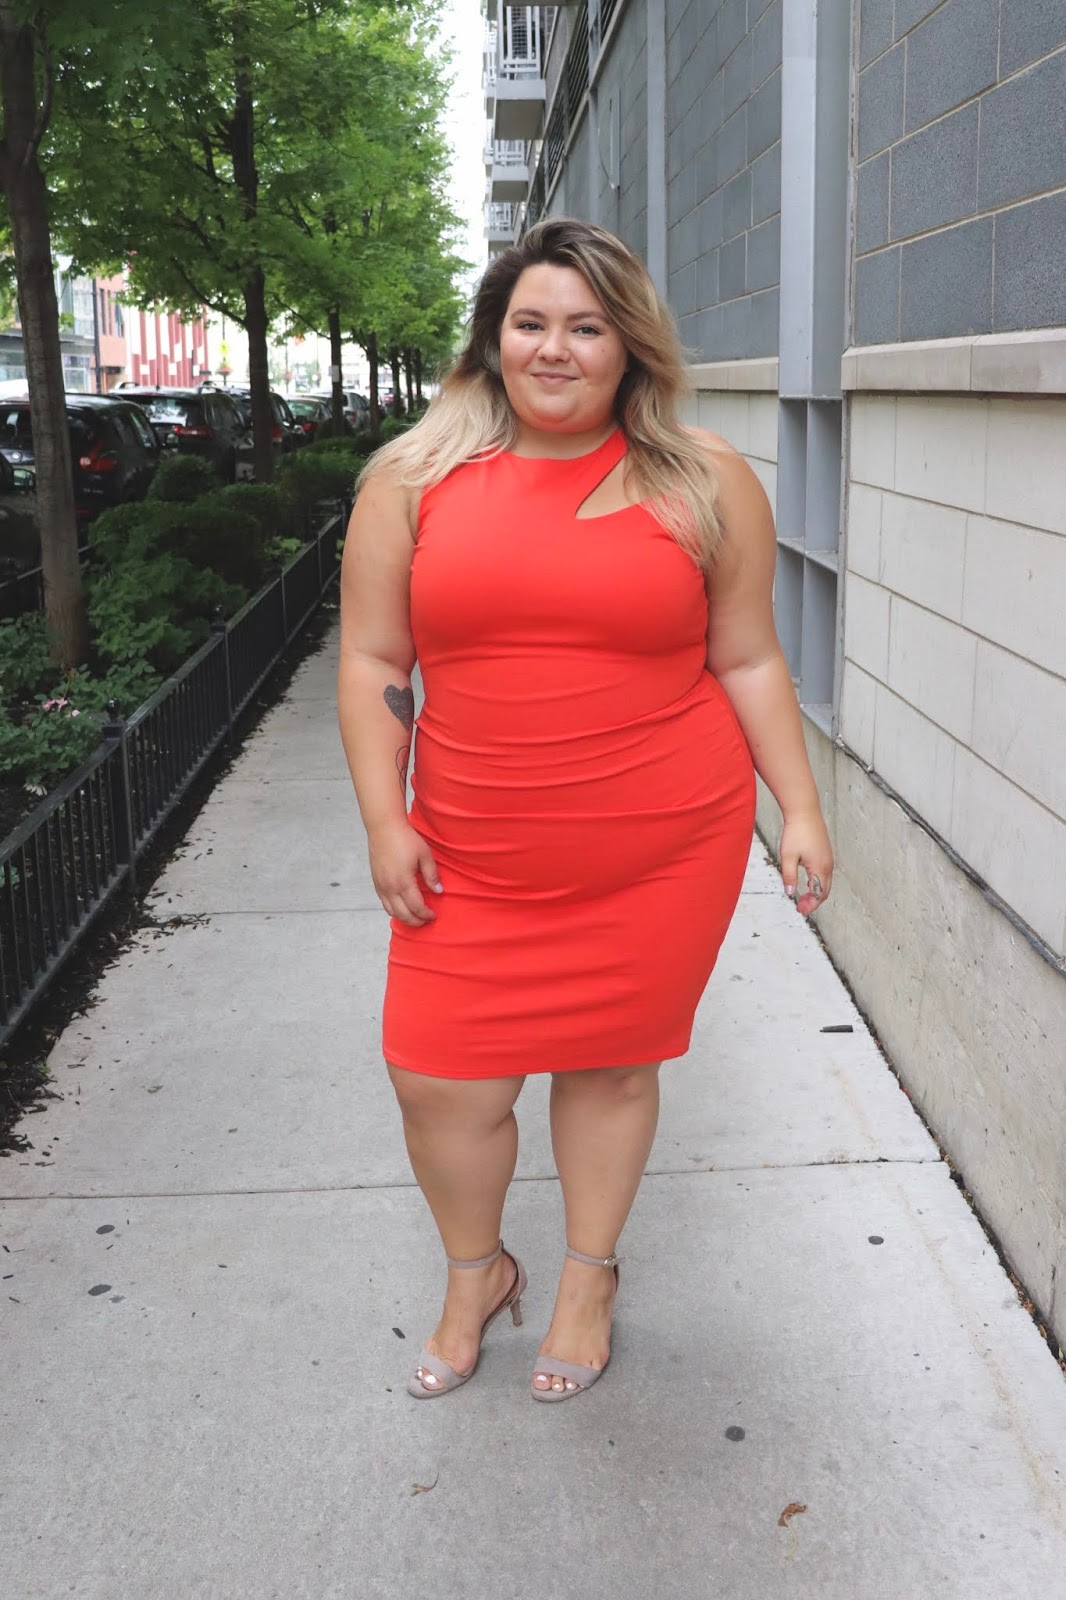 Chicago fashion blogger, Chicago plus size fashion blogger, natalie Craig, natalie in the city, plus size fashion, Chicago fashion, plus size fashion blogger, eff your beauty standards, fatshion, skorch magazine, Chicago model, plus size model, plus size petite, affordable plus size clothing, embrace your curves, plus model magazine,  petite plus size, fashion nova, fashion nova curve, orange cutout dress